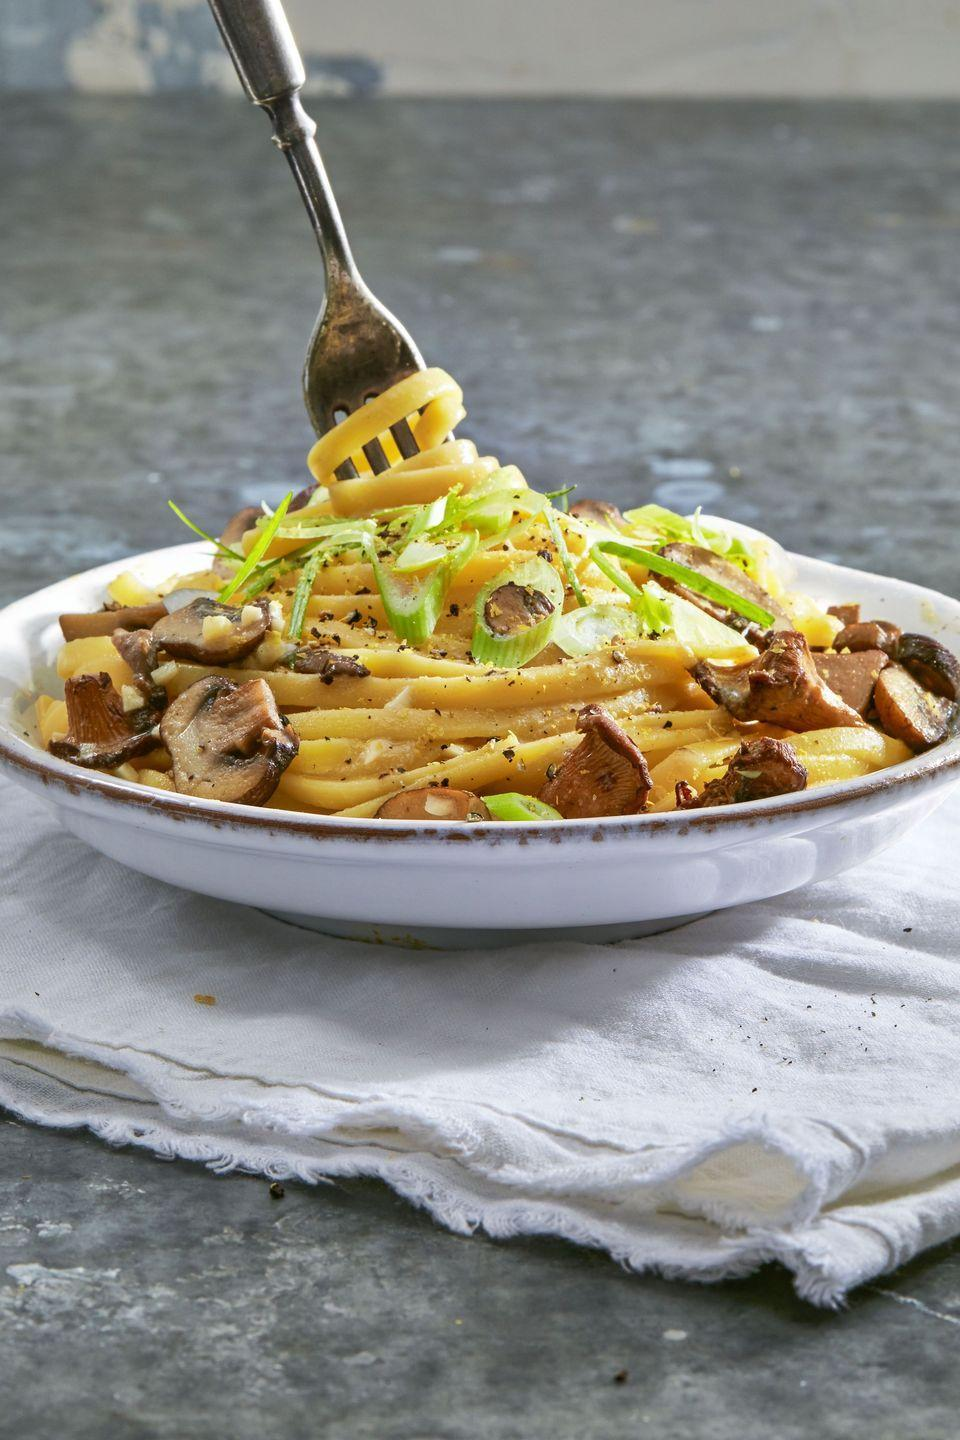 """<p>You can't go wrong with a classic pasta dish on Thanksgiving, especially one that's creamy and secretly vegan so everyone can enjoy!</p><p><a href=""""https://www.goodhousekeeping.com/food-recipes/easy/a36260/creamy-vegan-linguine-with-wild-mushrooms/"""" rel=""""nofollow noopener"""" target=""""_blank"""" data-ylk=""""slk:Get the recipe for Creamy Vegan Linguine with Wild Mushrooms »"""" class=""""link rapid-noclick-resp""""><em>Get the recipe for Creamy Vegan Linguine with Wild Mushrooms »</em></a></p><p><strong>RELATED: </strong><a href=""""https://www.goodhousekeeping.com/food-recipes/g5143/easy-vegan-pasta-recipes/"""" rel=""""nofollow noopener"""" target=""""_blank"""" data-ylk=""""slk:35 Easy Vegan Pasta Dishes to Make for Dinner Tonight"""" class=""""link rapid-noclick-resp"""">35 Easy Vegan Pasta Dishes to Make for Dinner Tonight</a><br></p>"""